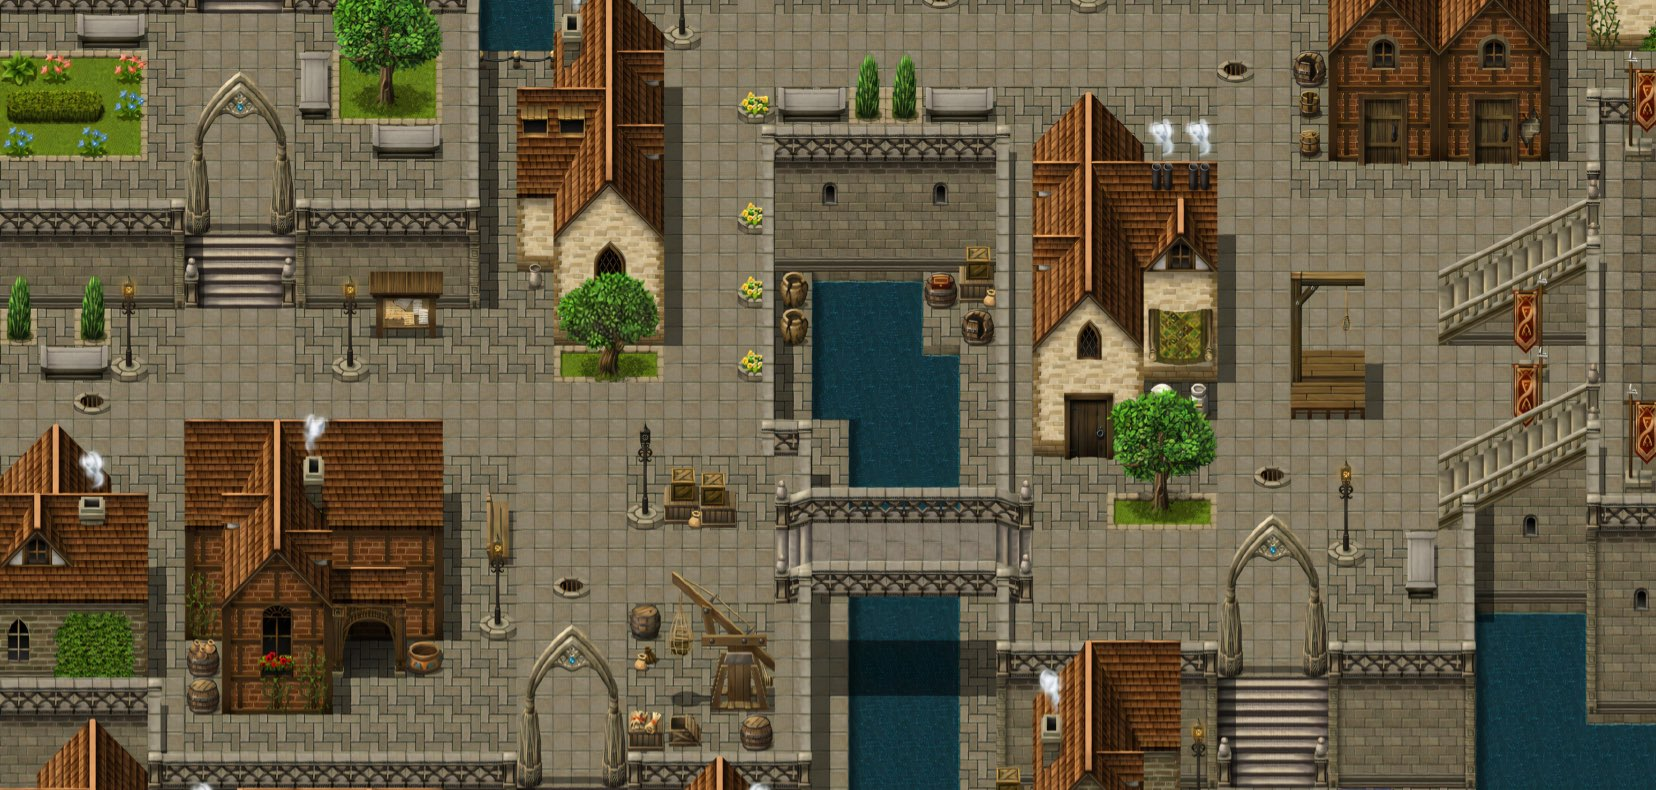 rpg-maker-vx-ace-improved-mapping-bg-mobile